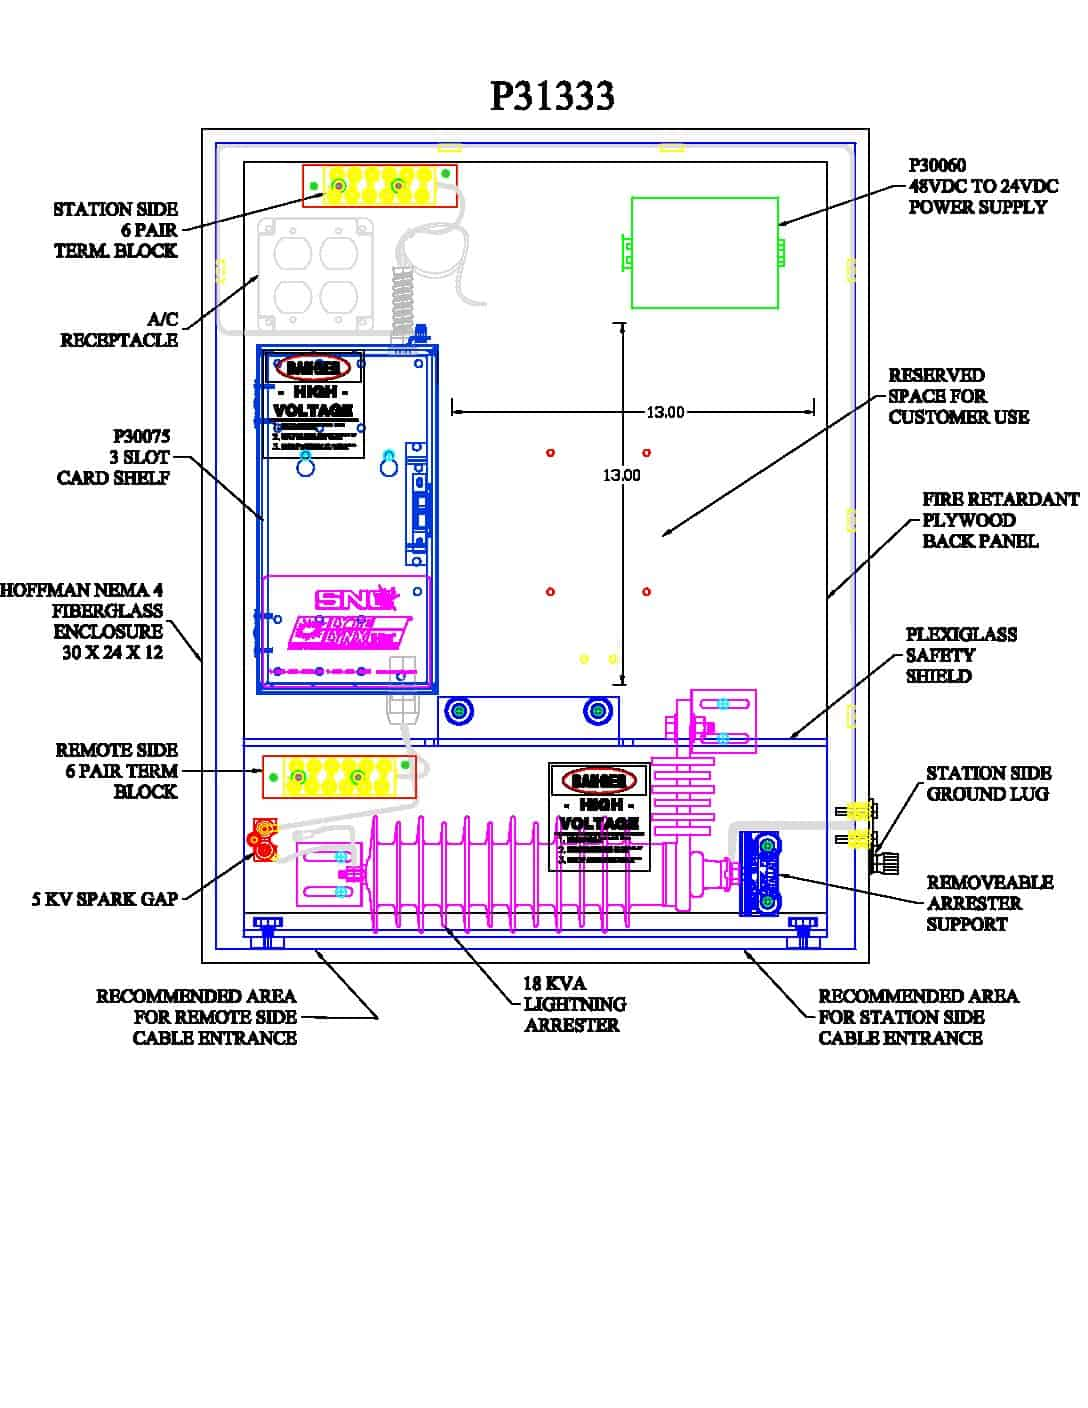 P31333 Turnkey Protection Packages - 3 slot PDF thumbnail